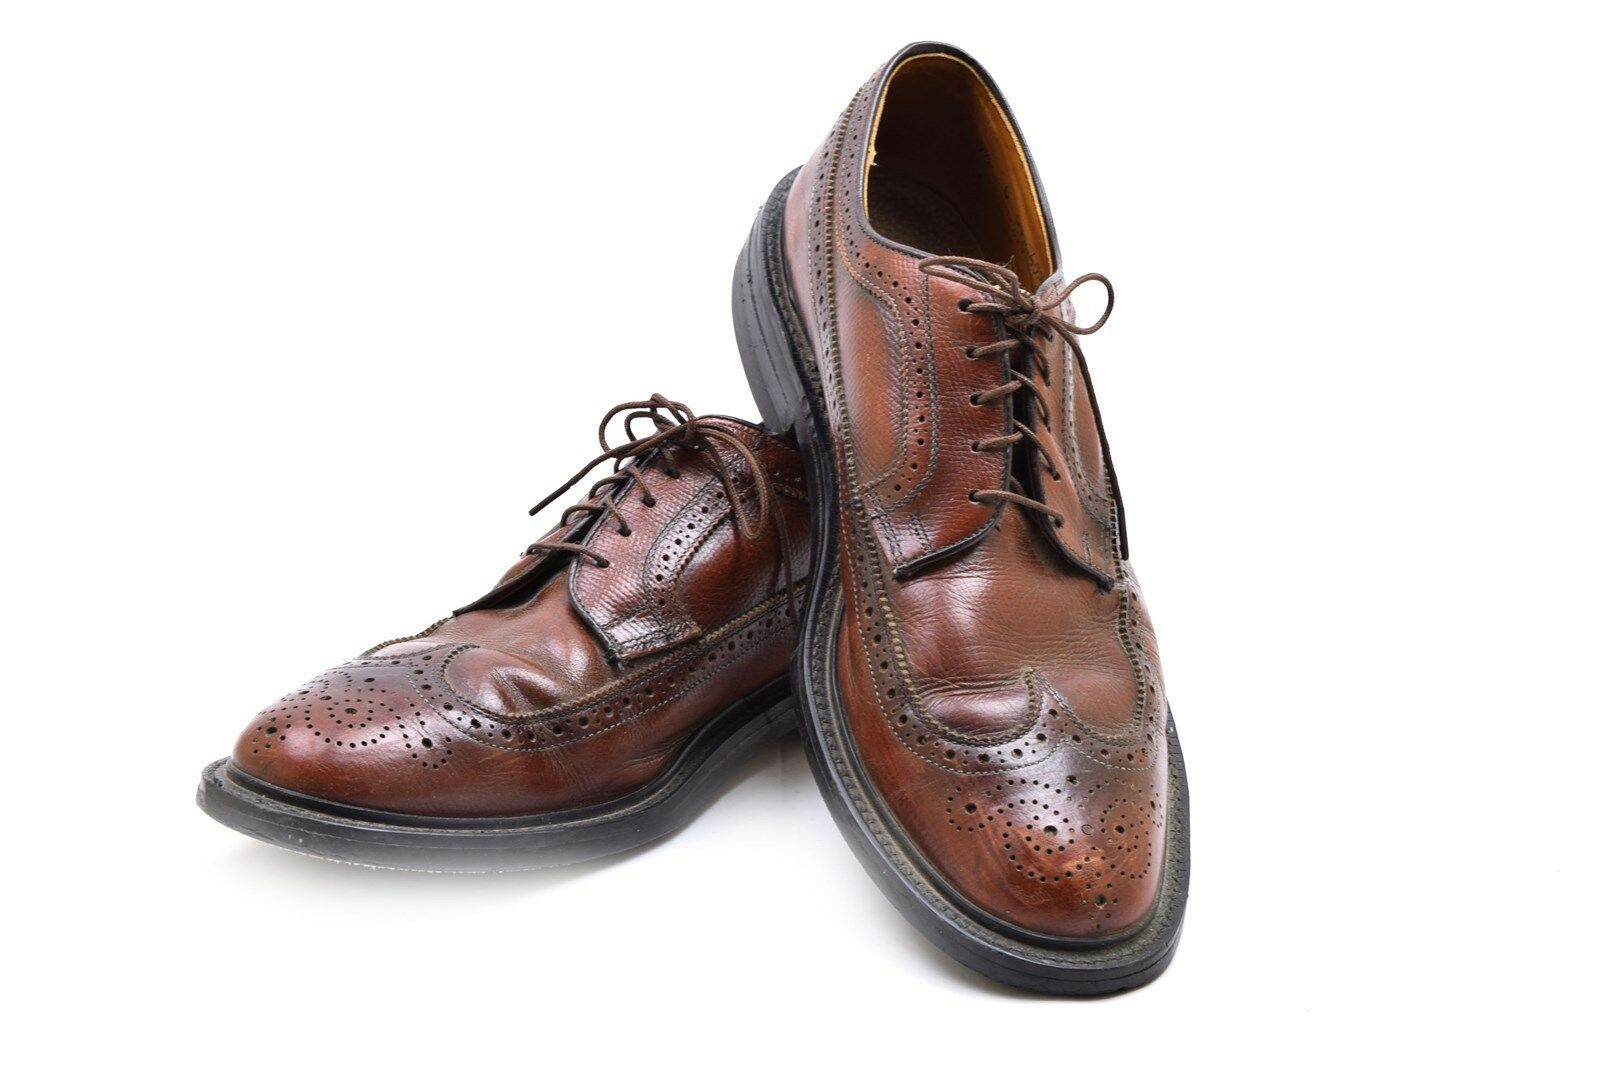 Vintage Sebago Neolite Goodyear braun Wing Tip Leather Oxford schuhe 9.5 C